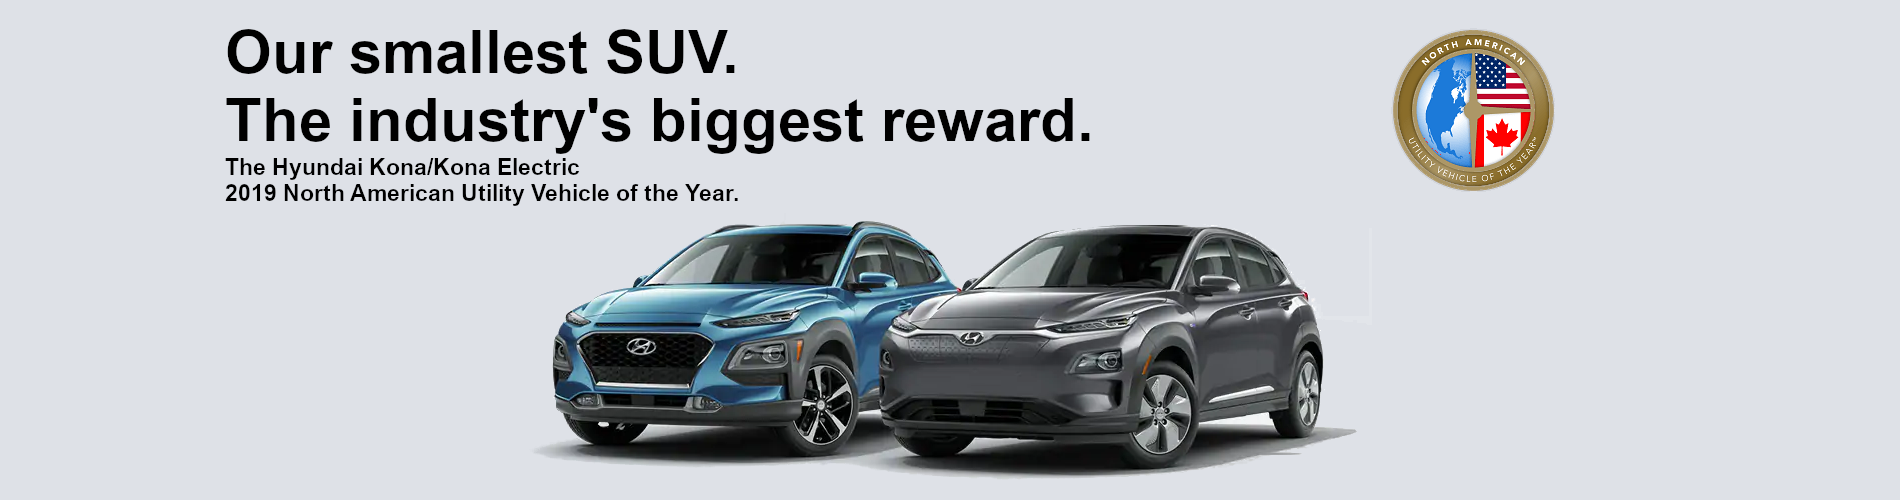 Hyundai Kona - Utility Vehicle of the Year